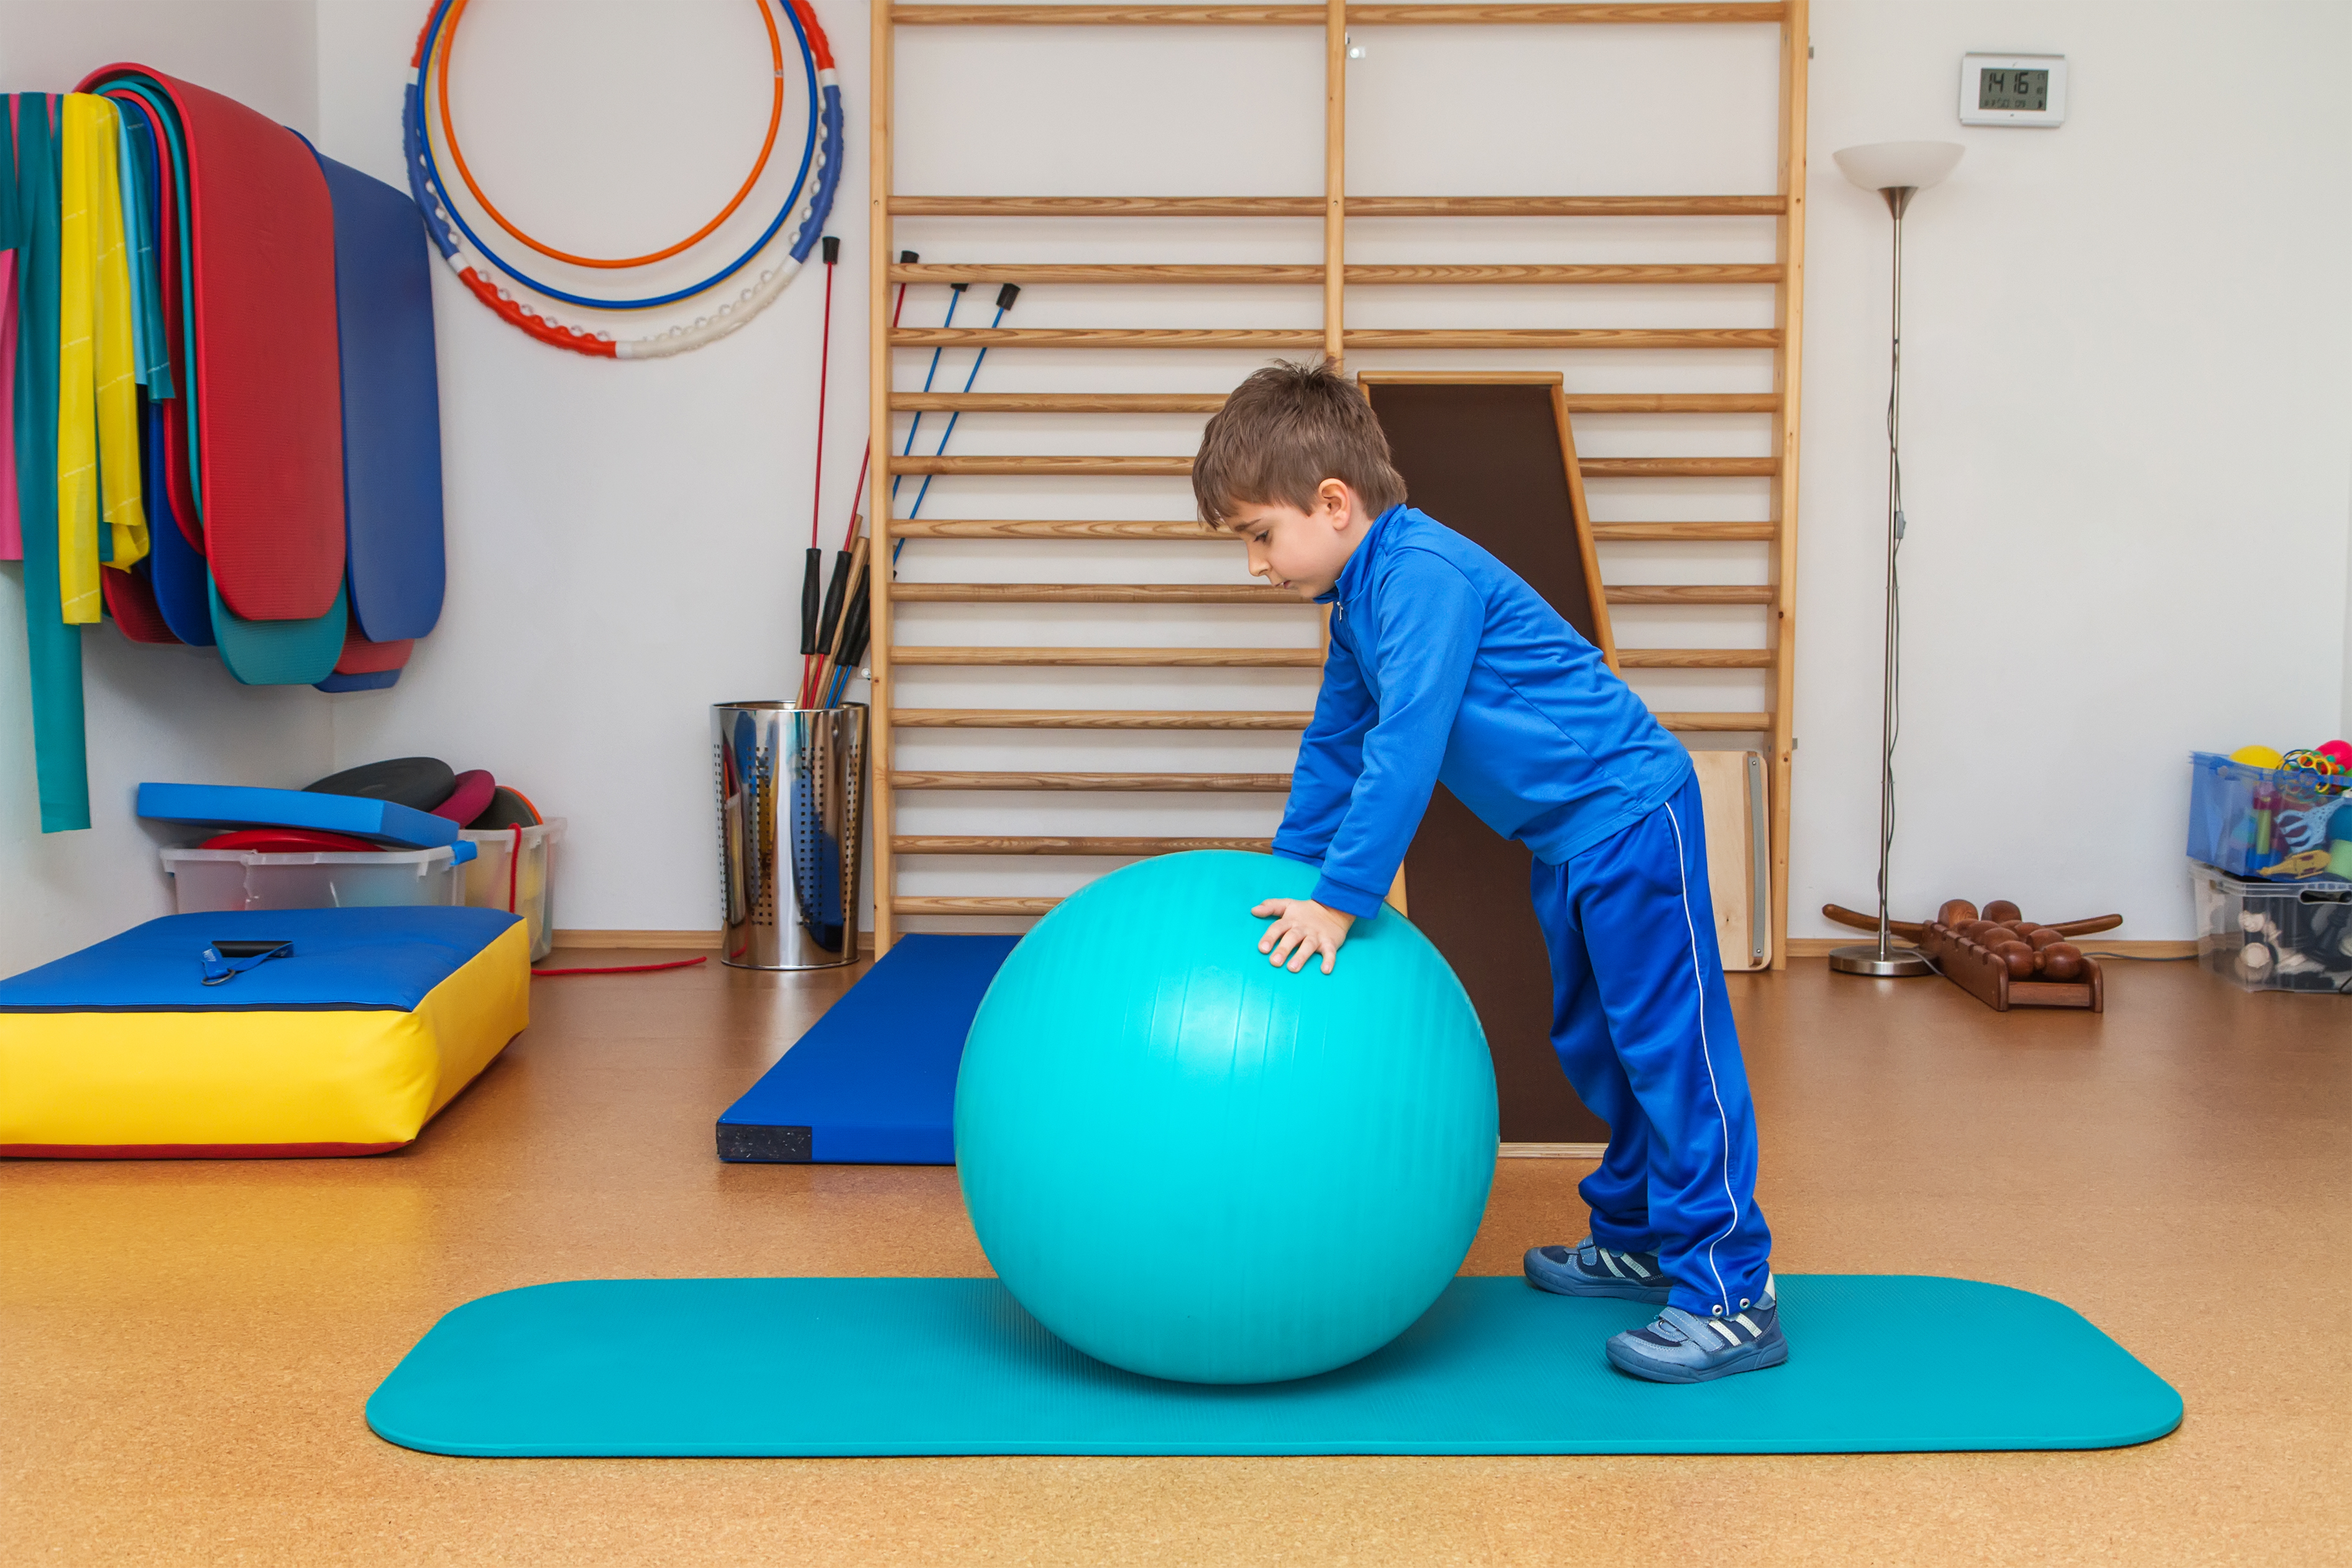 Equipment pediatric physical therapy - Intensive Physical And Psychosocial Therapy Reduces Pediatric Pain In Study